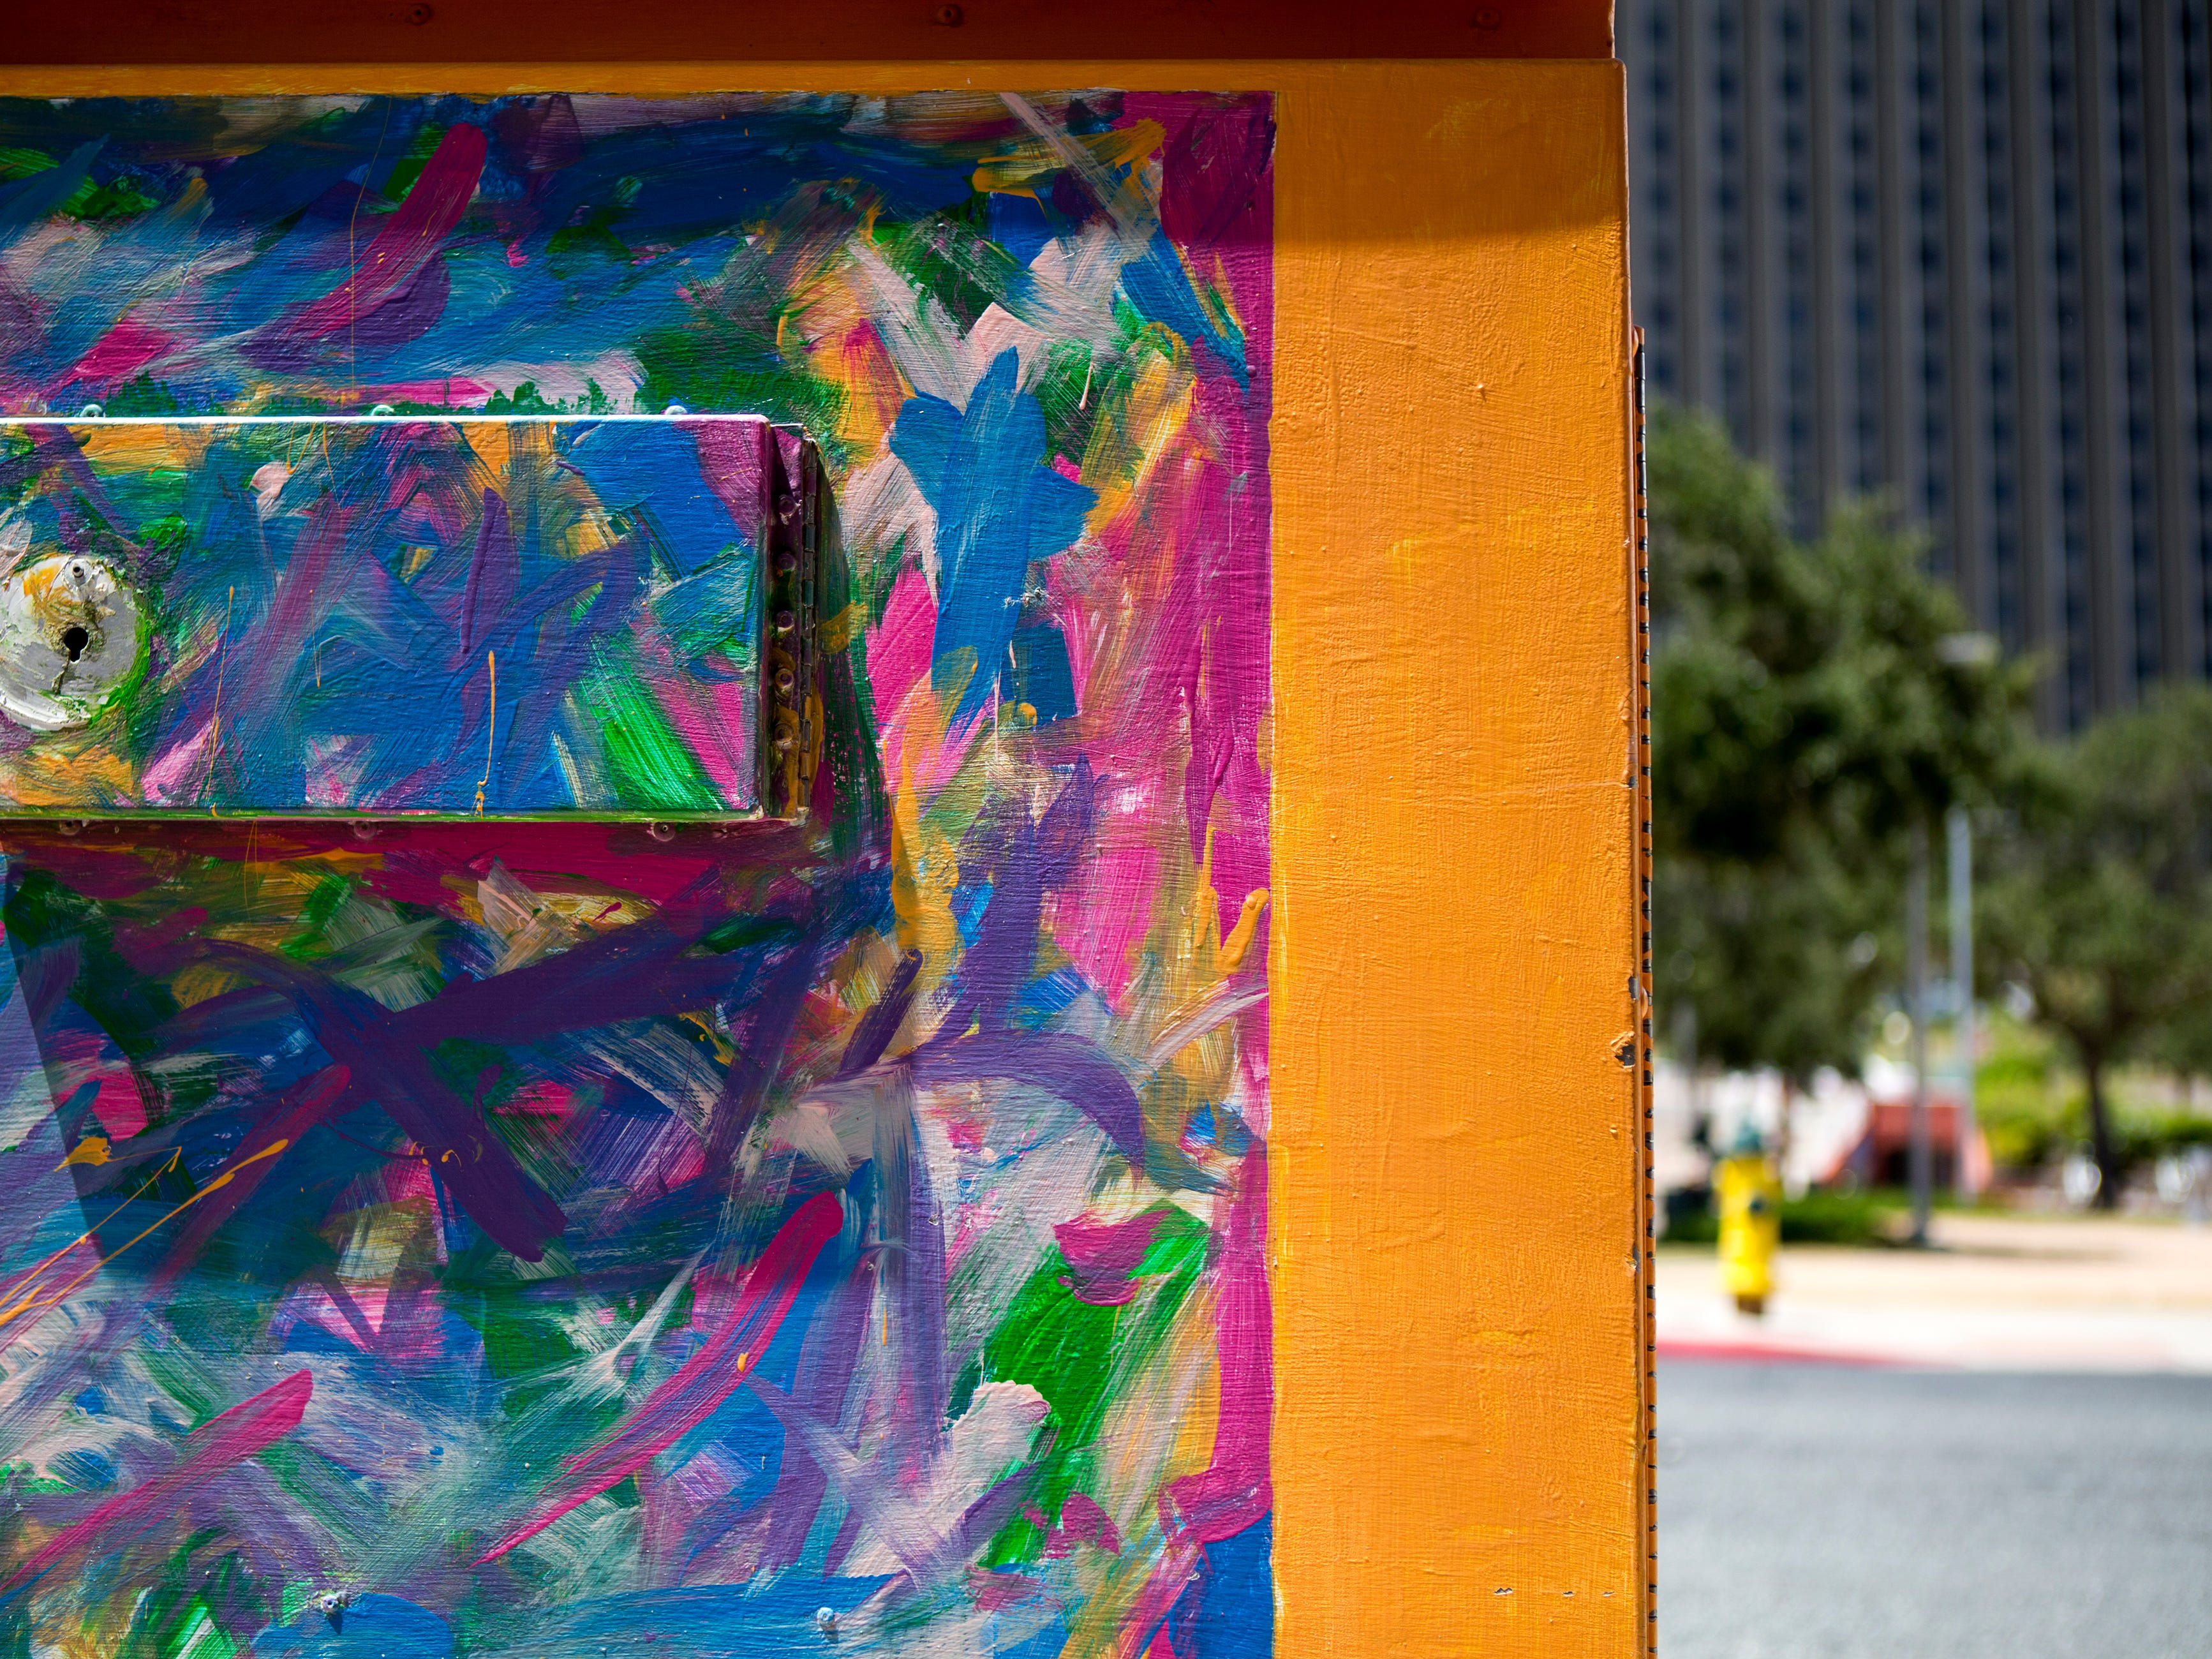 A painted utility box in downtown Corpus Christi is located near the corner of Schatzell and N. Mesquite streets. The Downtown Management District began the process of having the boxes painted in 1997 with a program called Art Sparks. The program allowed students interested in art to paint the boxes over the summer under the supervision of a teacher and get paid for their work. In 2004, the district began using commissioned artists.